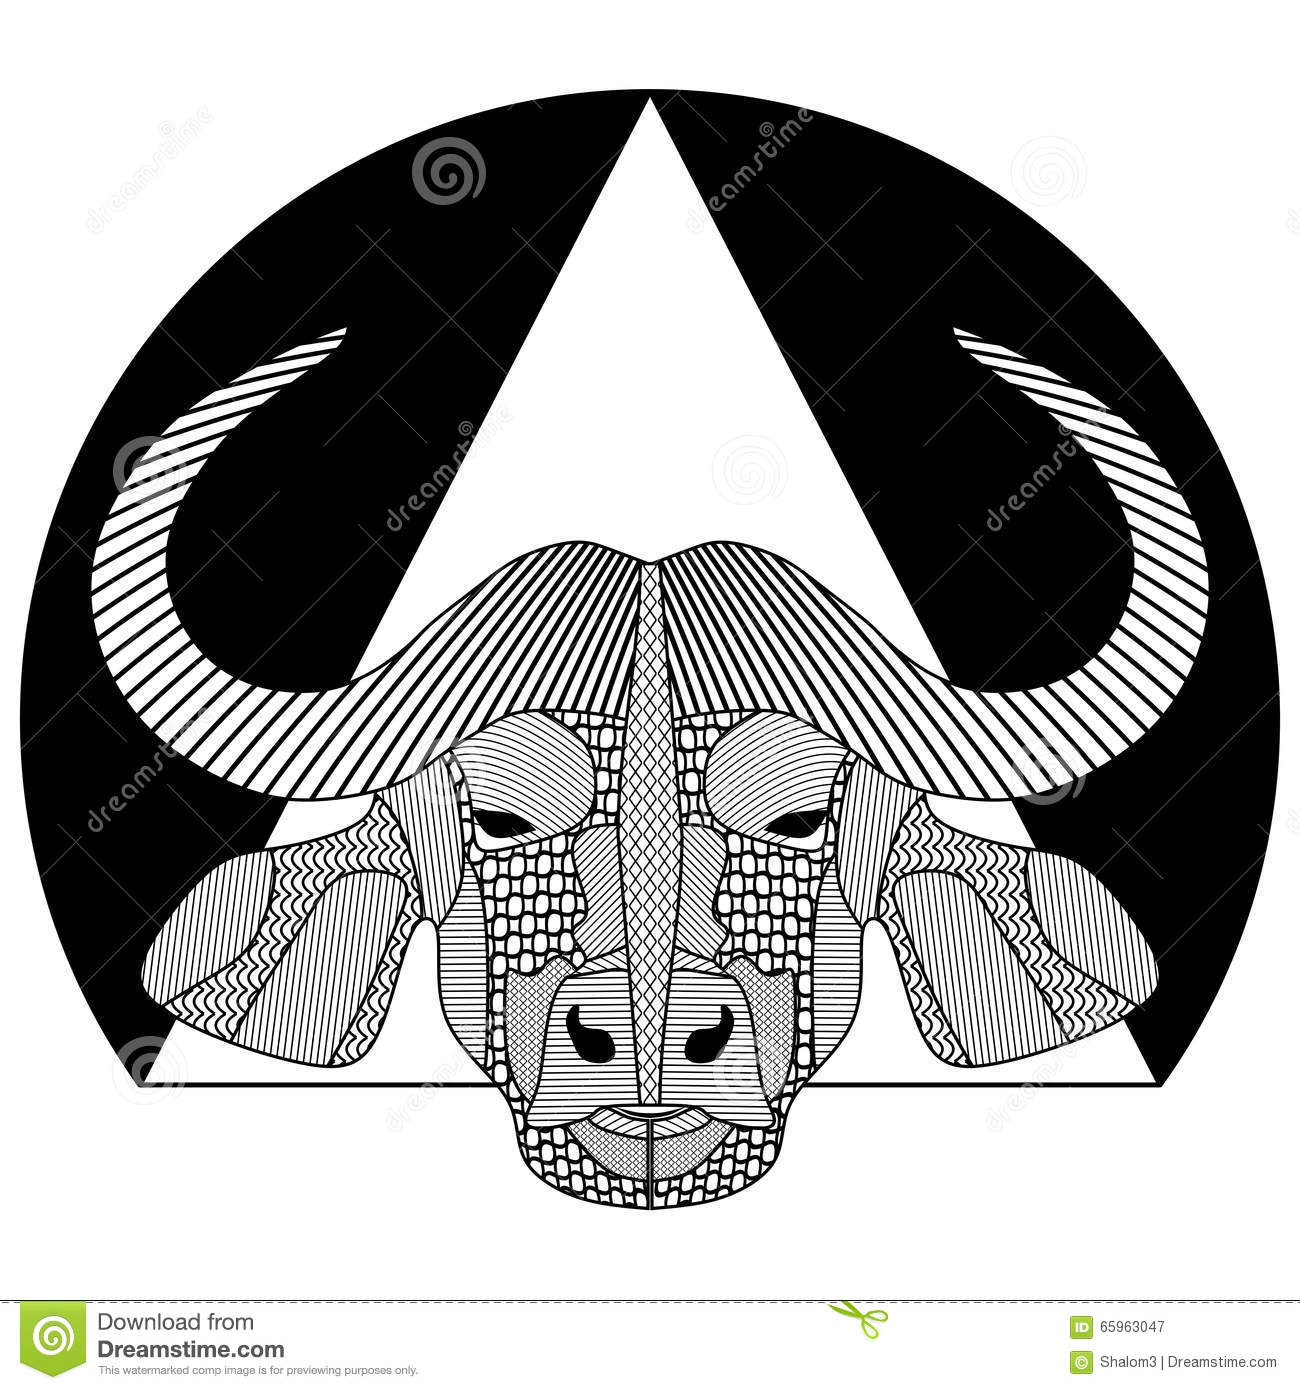 Buffalo Head, Black And White Symmetrical Drawing With